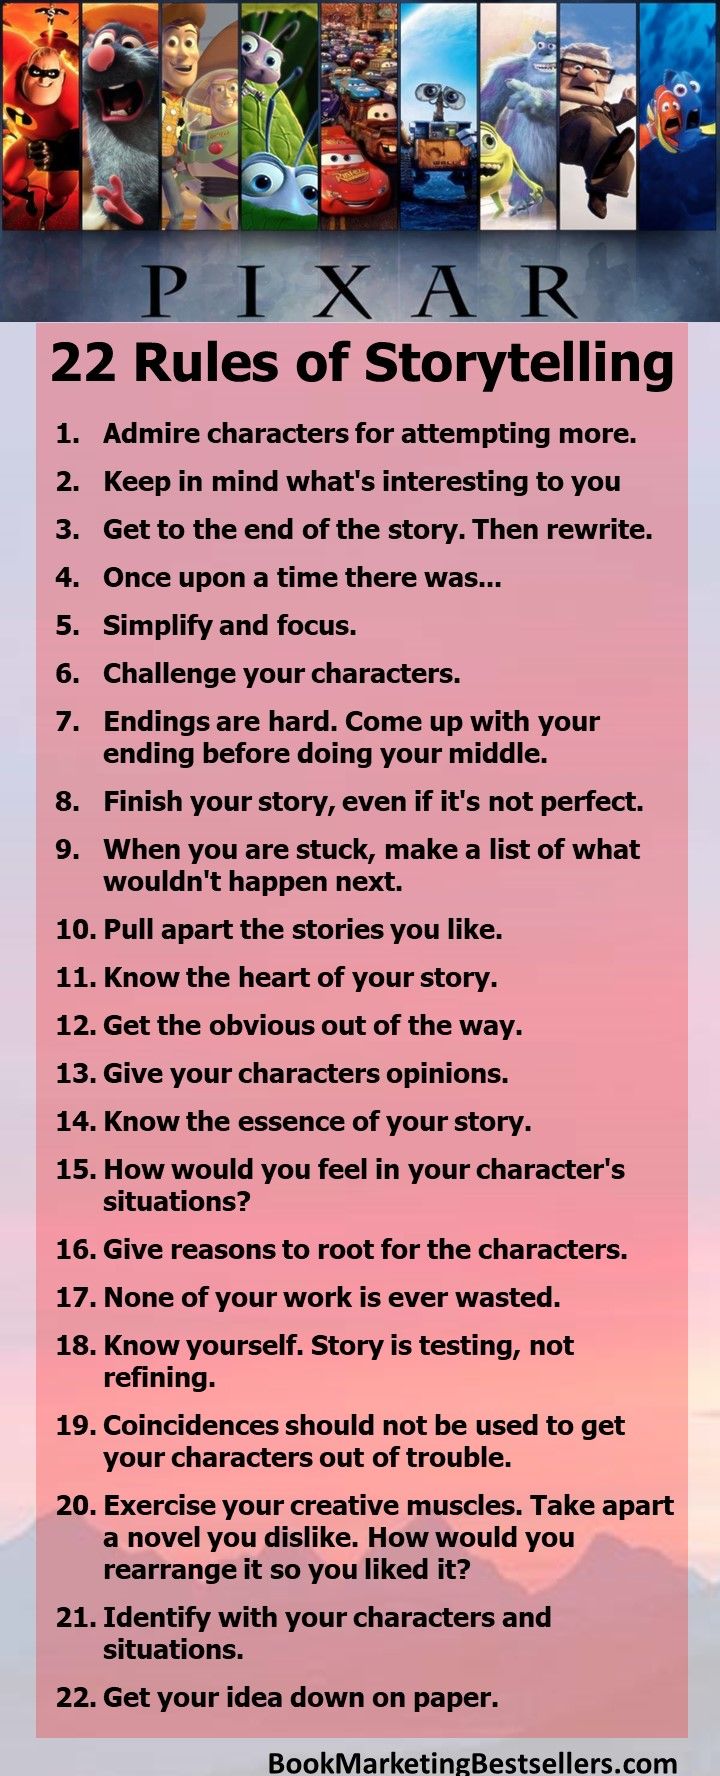 Pixar's 22 Rules for Storytelling: Challenge Your Characters. Come Up With Your Ending Before Doing Your Middle. #writing #writers #authors